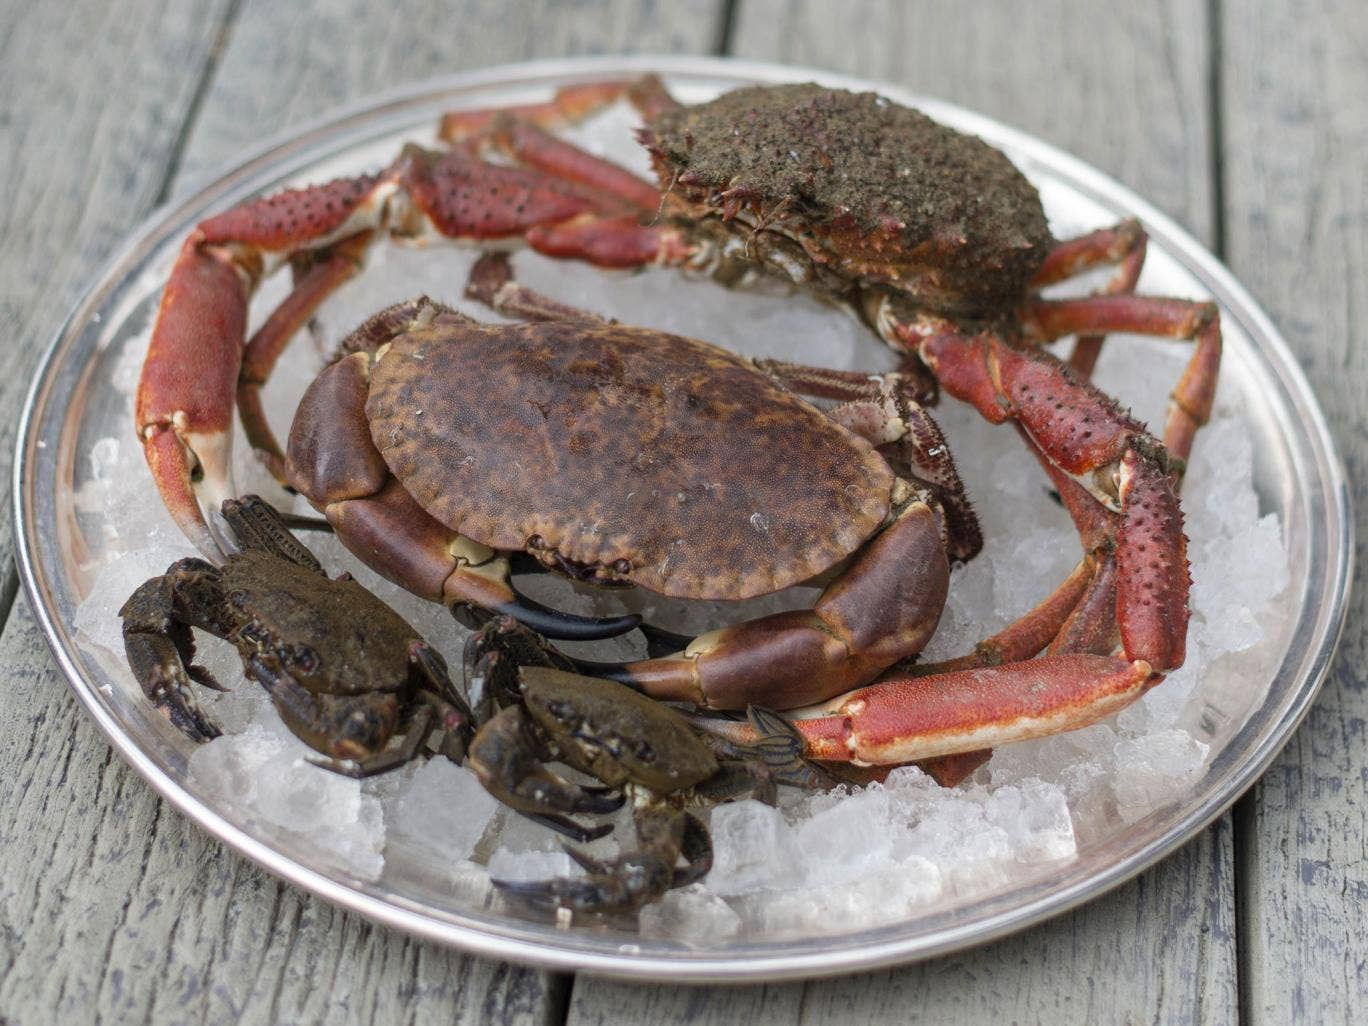 Heaven and shell: spider, Mudeford and brown crabs at the Jetty Restaurant at Mudeford in Dorset